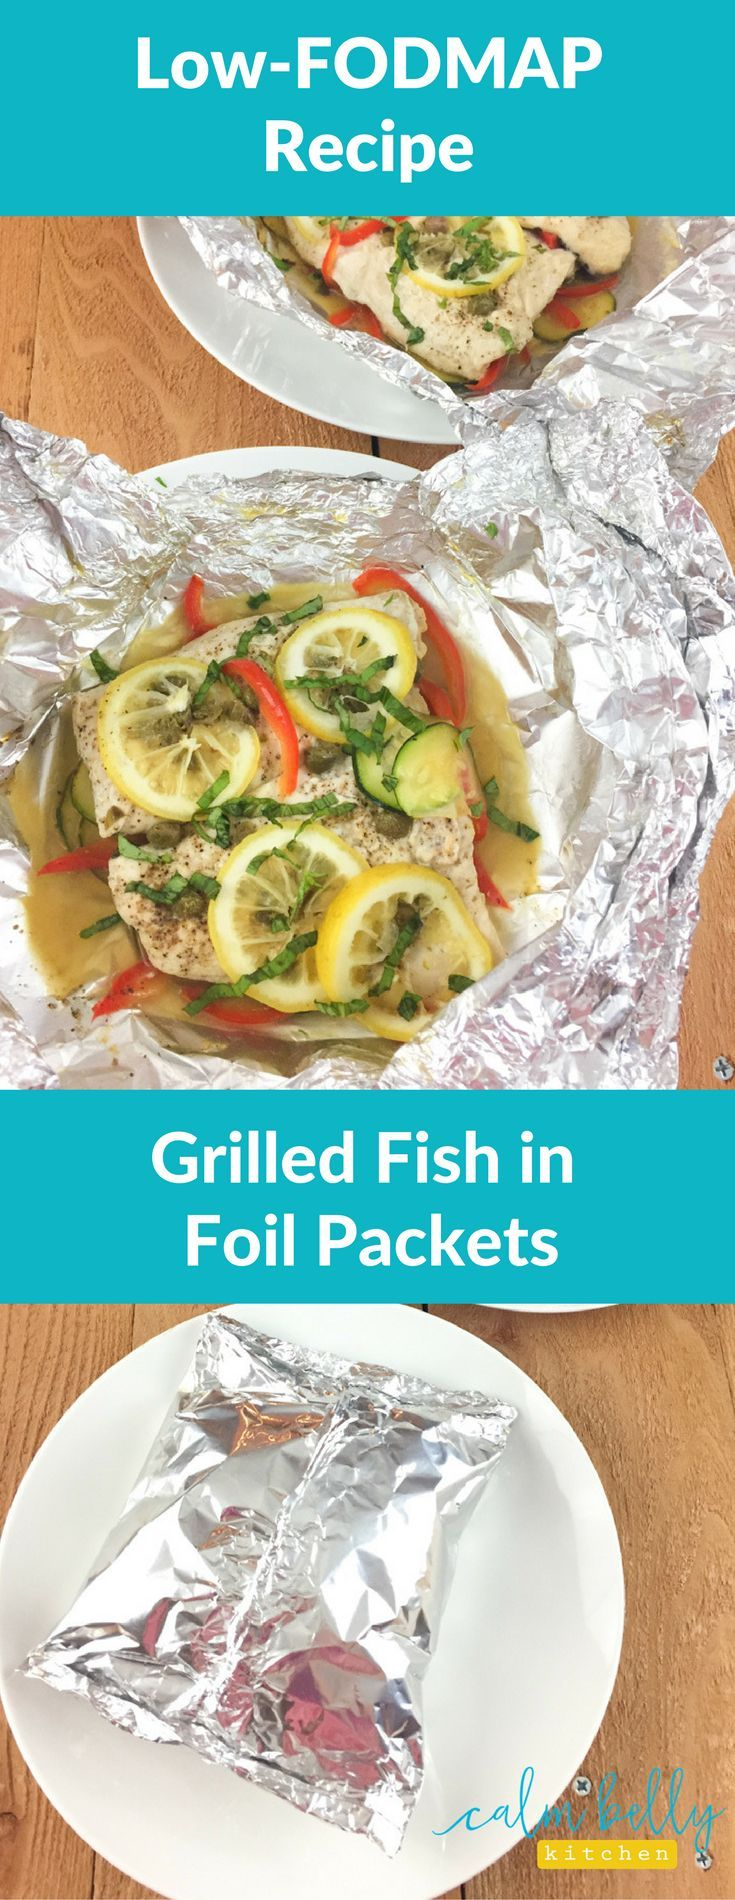 This low FODMAP recipe is healthy, fast and a great choice when you're eating for IBS. The simple foil packet method is the easiest way to cook delicate fish and veggies on the grill.